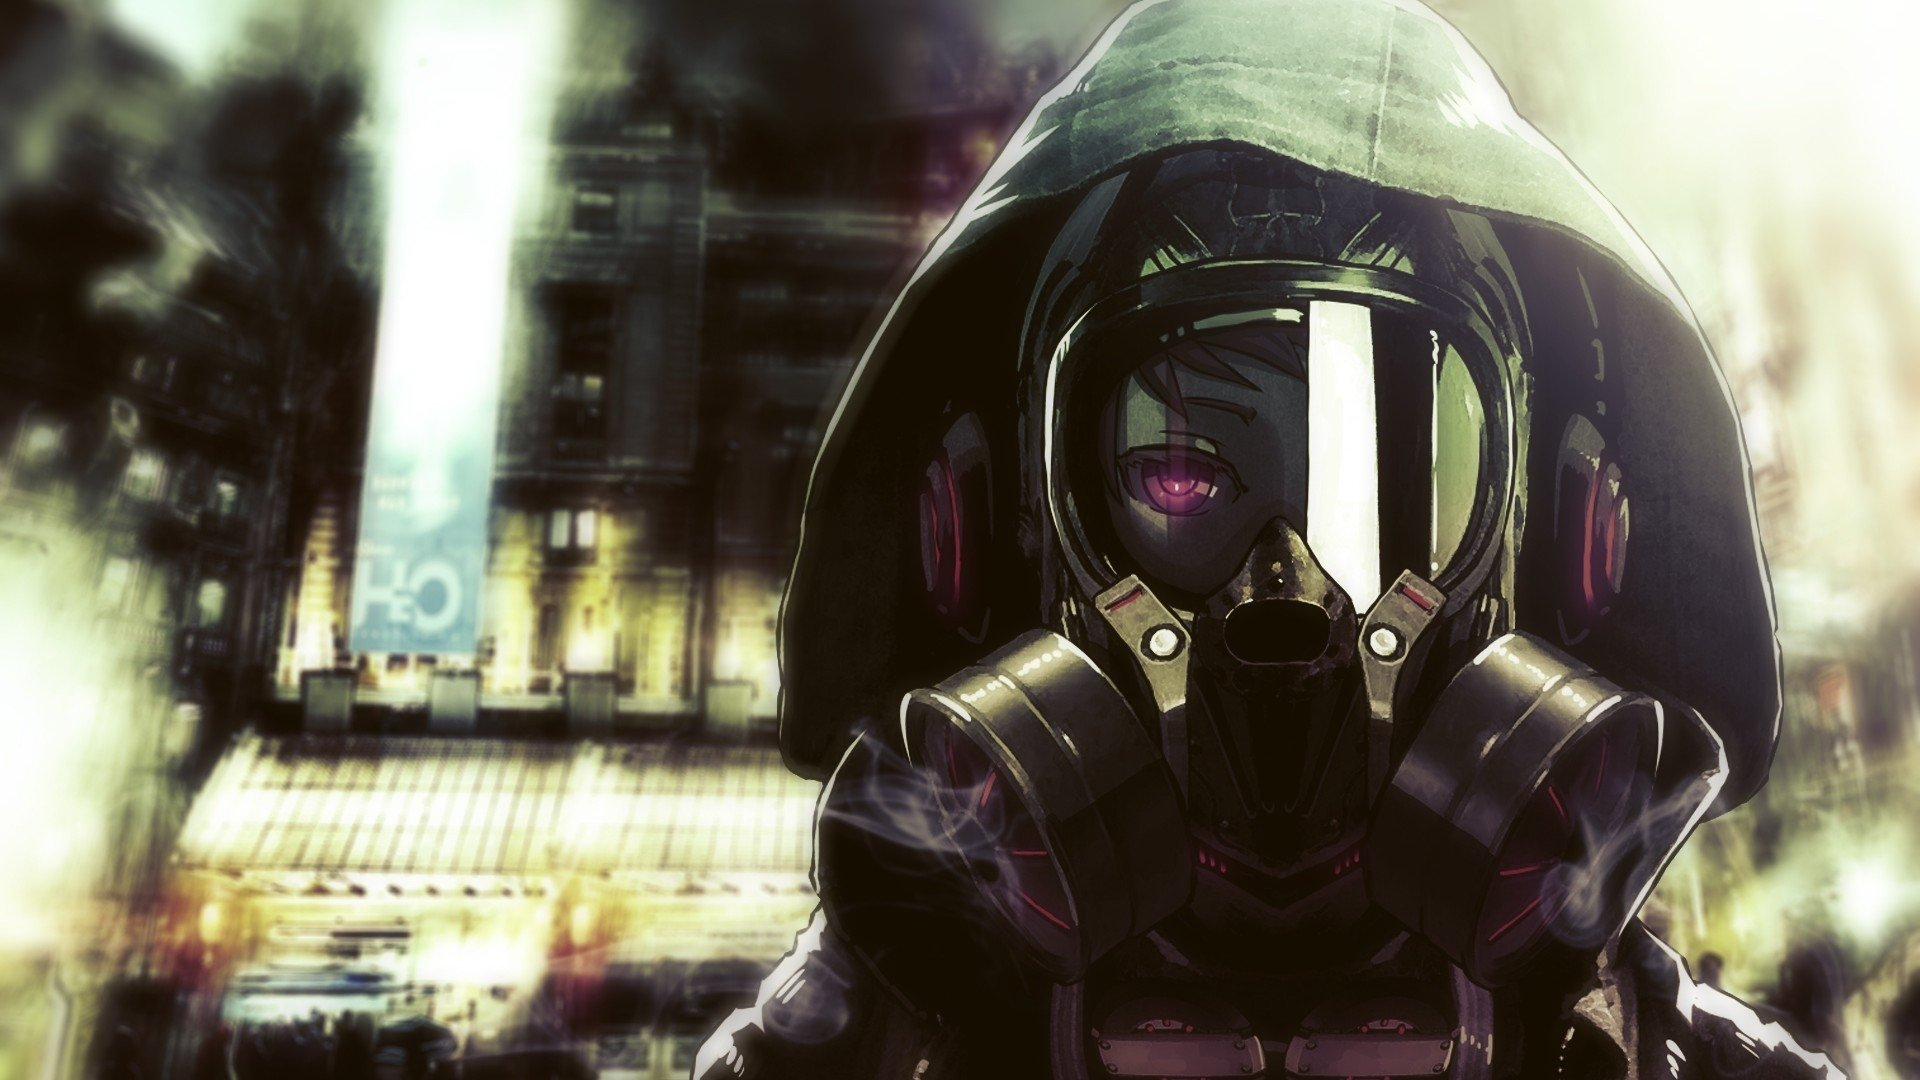 Sci Fi Fuel : Gas mask full hd wallpaper and background image